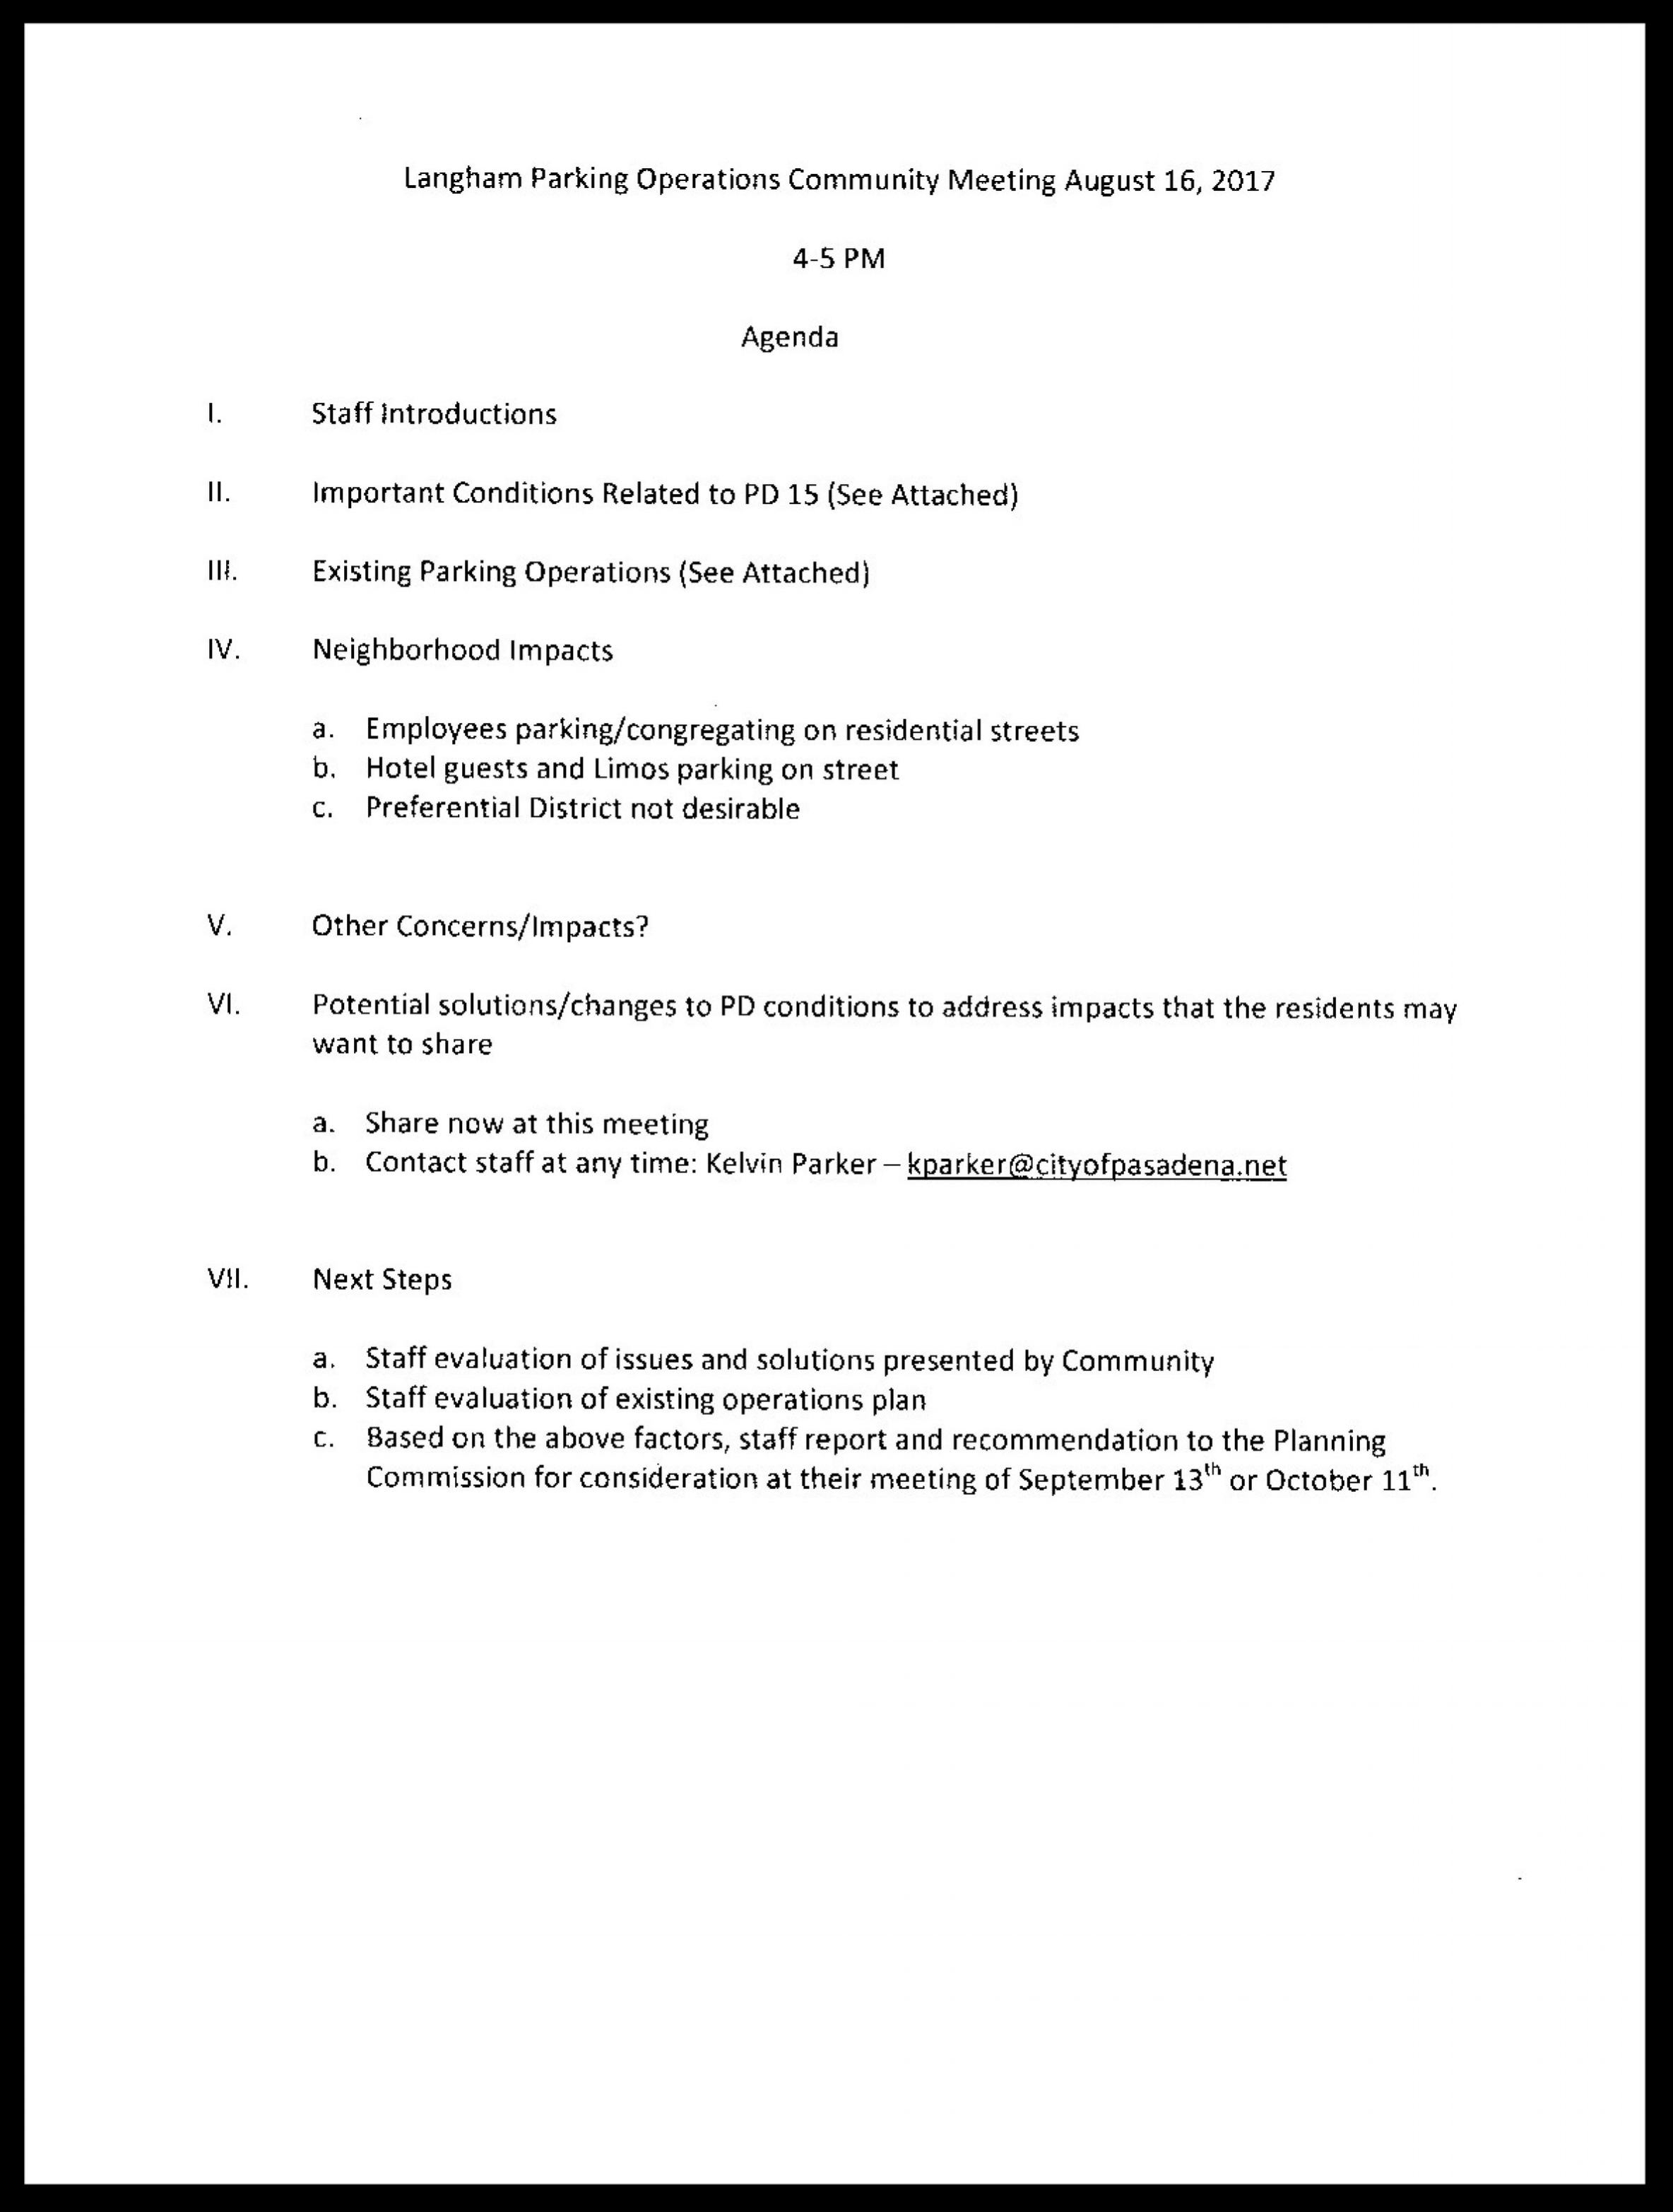 - Agenda for Langham Parking Operations Meeting - August 16, 2017